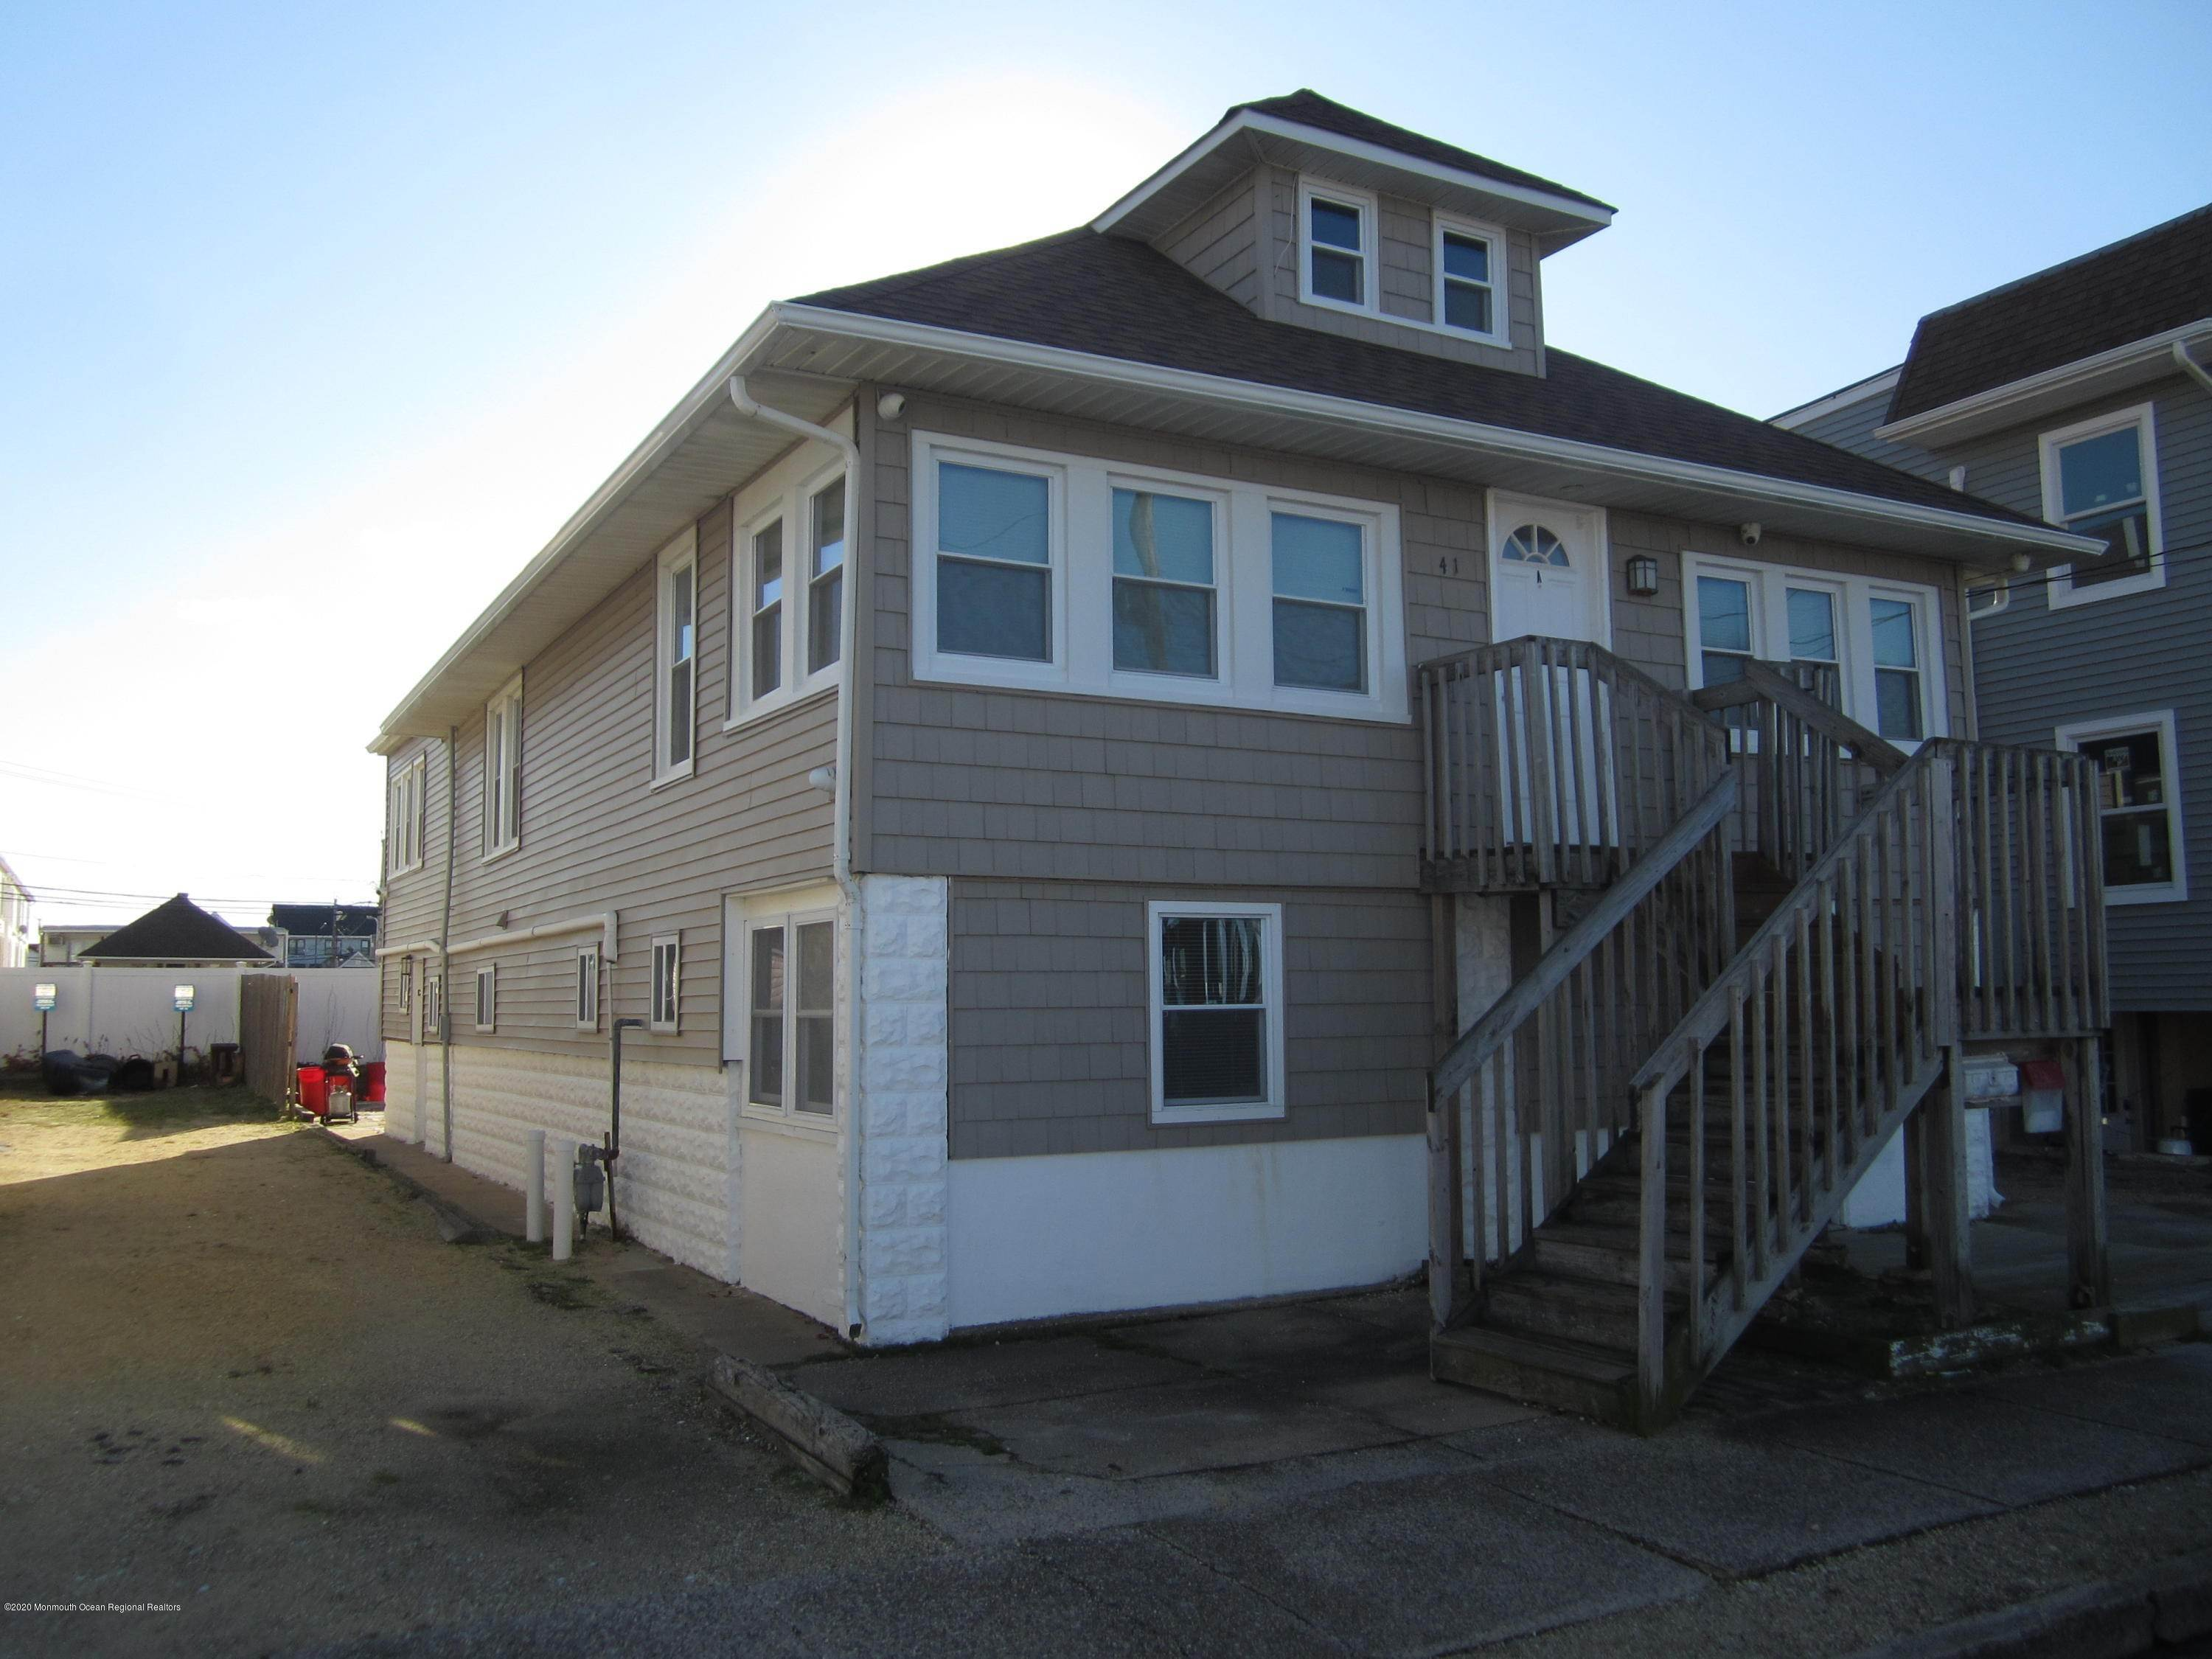 Property for Sale at 41 Blaine Avenue Seaside Heights, New Jersey 08751 United States